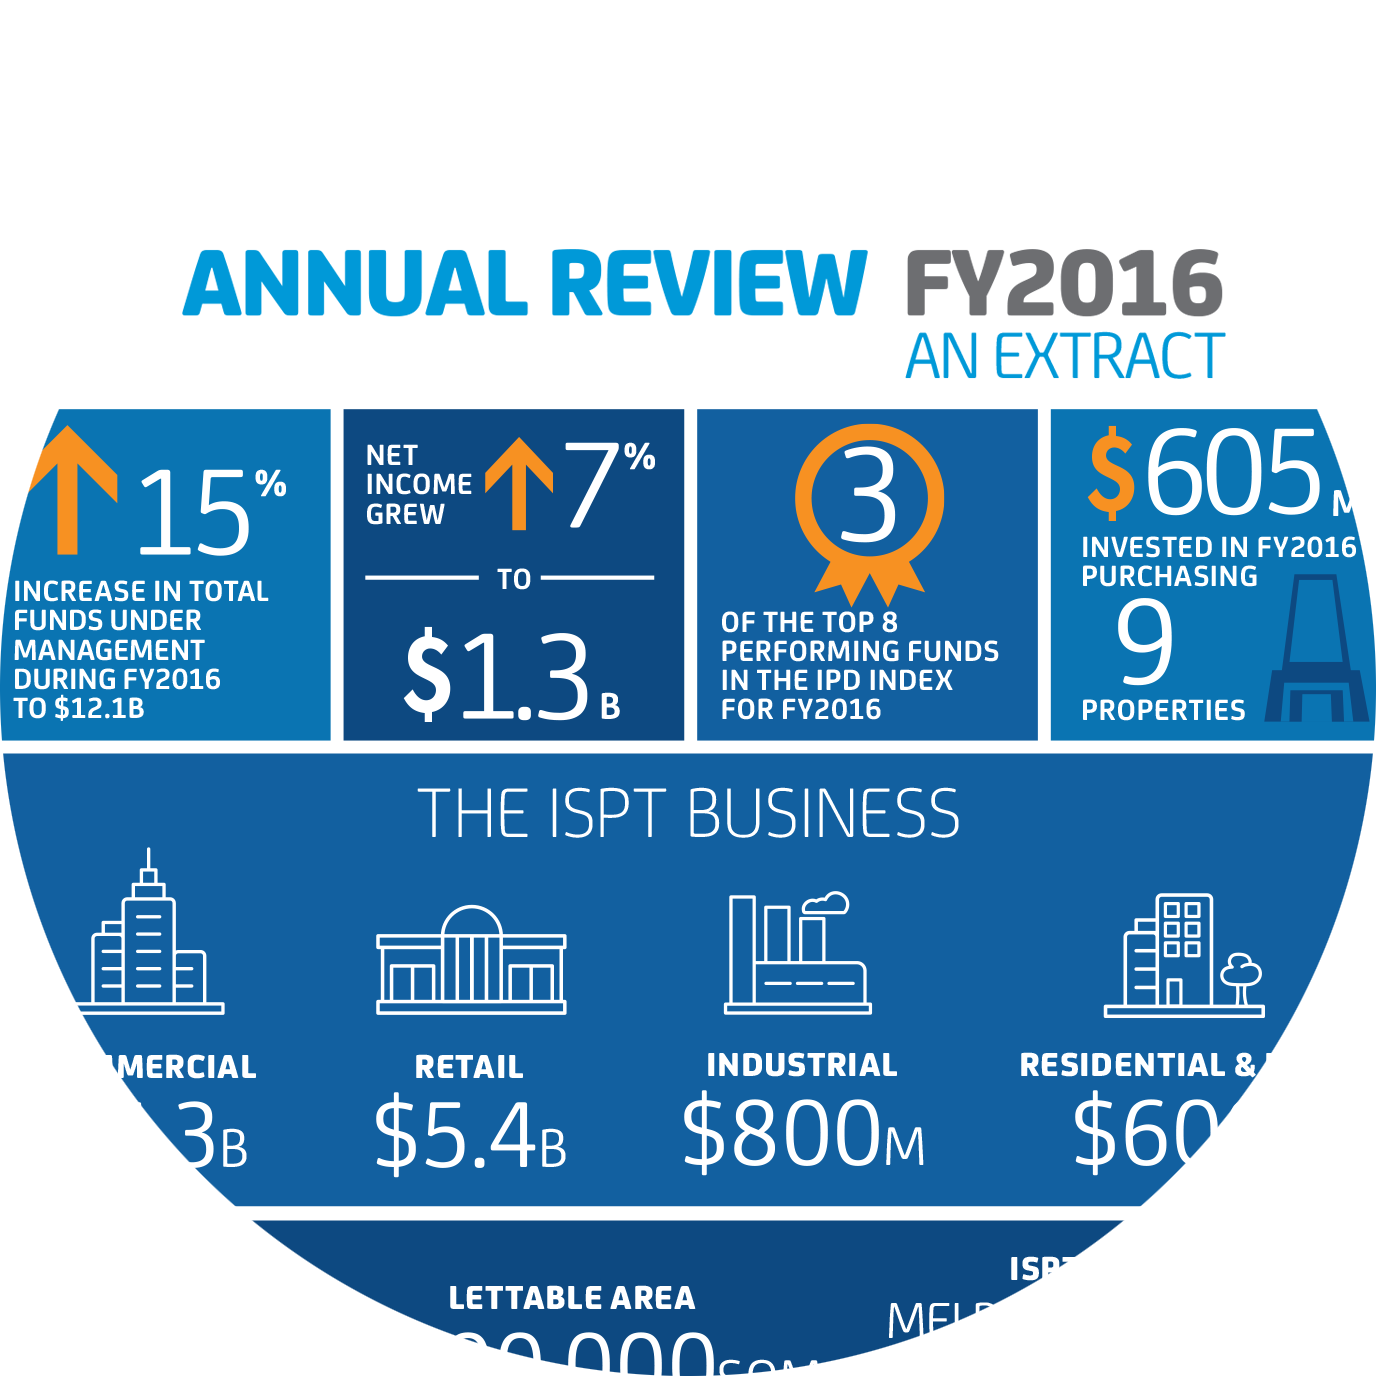 ISPT Annual Review Extract 2016